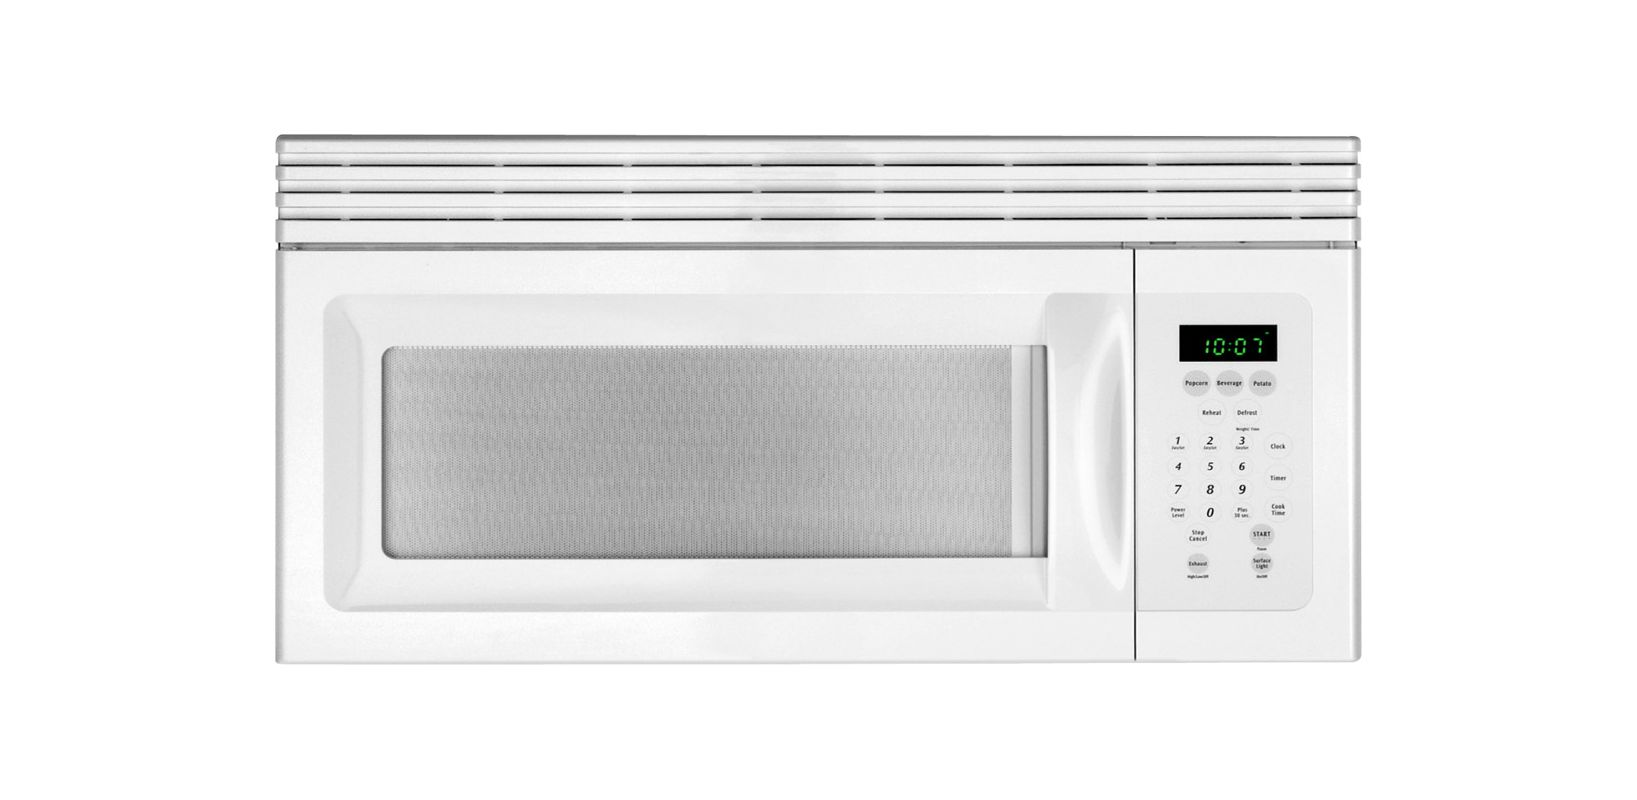 Frigidaire MWV150K 1.5 Cubic Foot Over-The-Range Microwave with Ready-Select Con photo